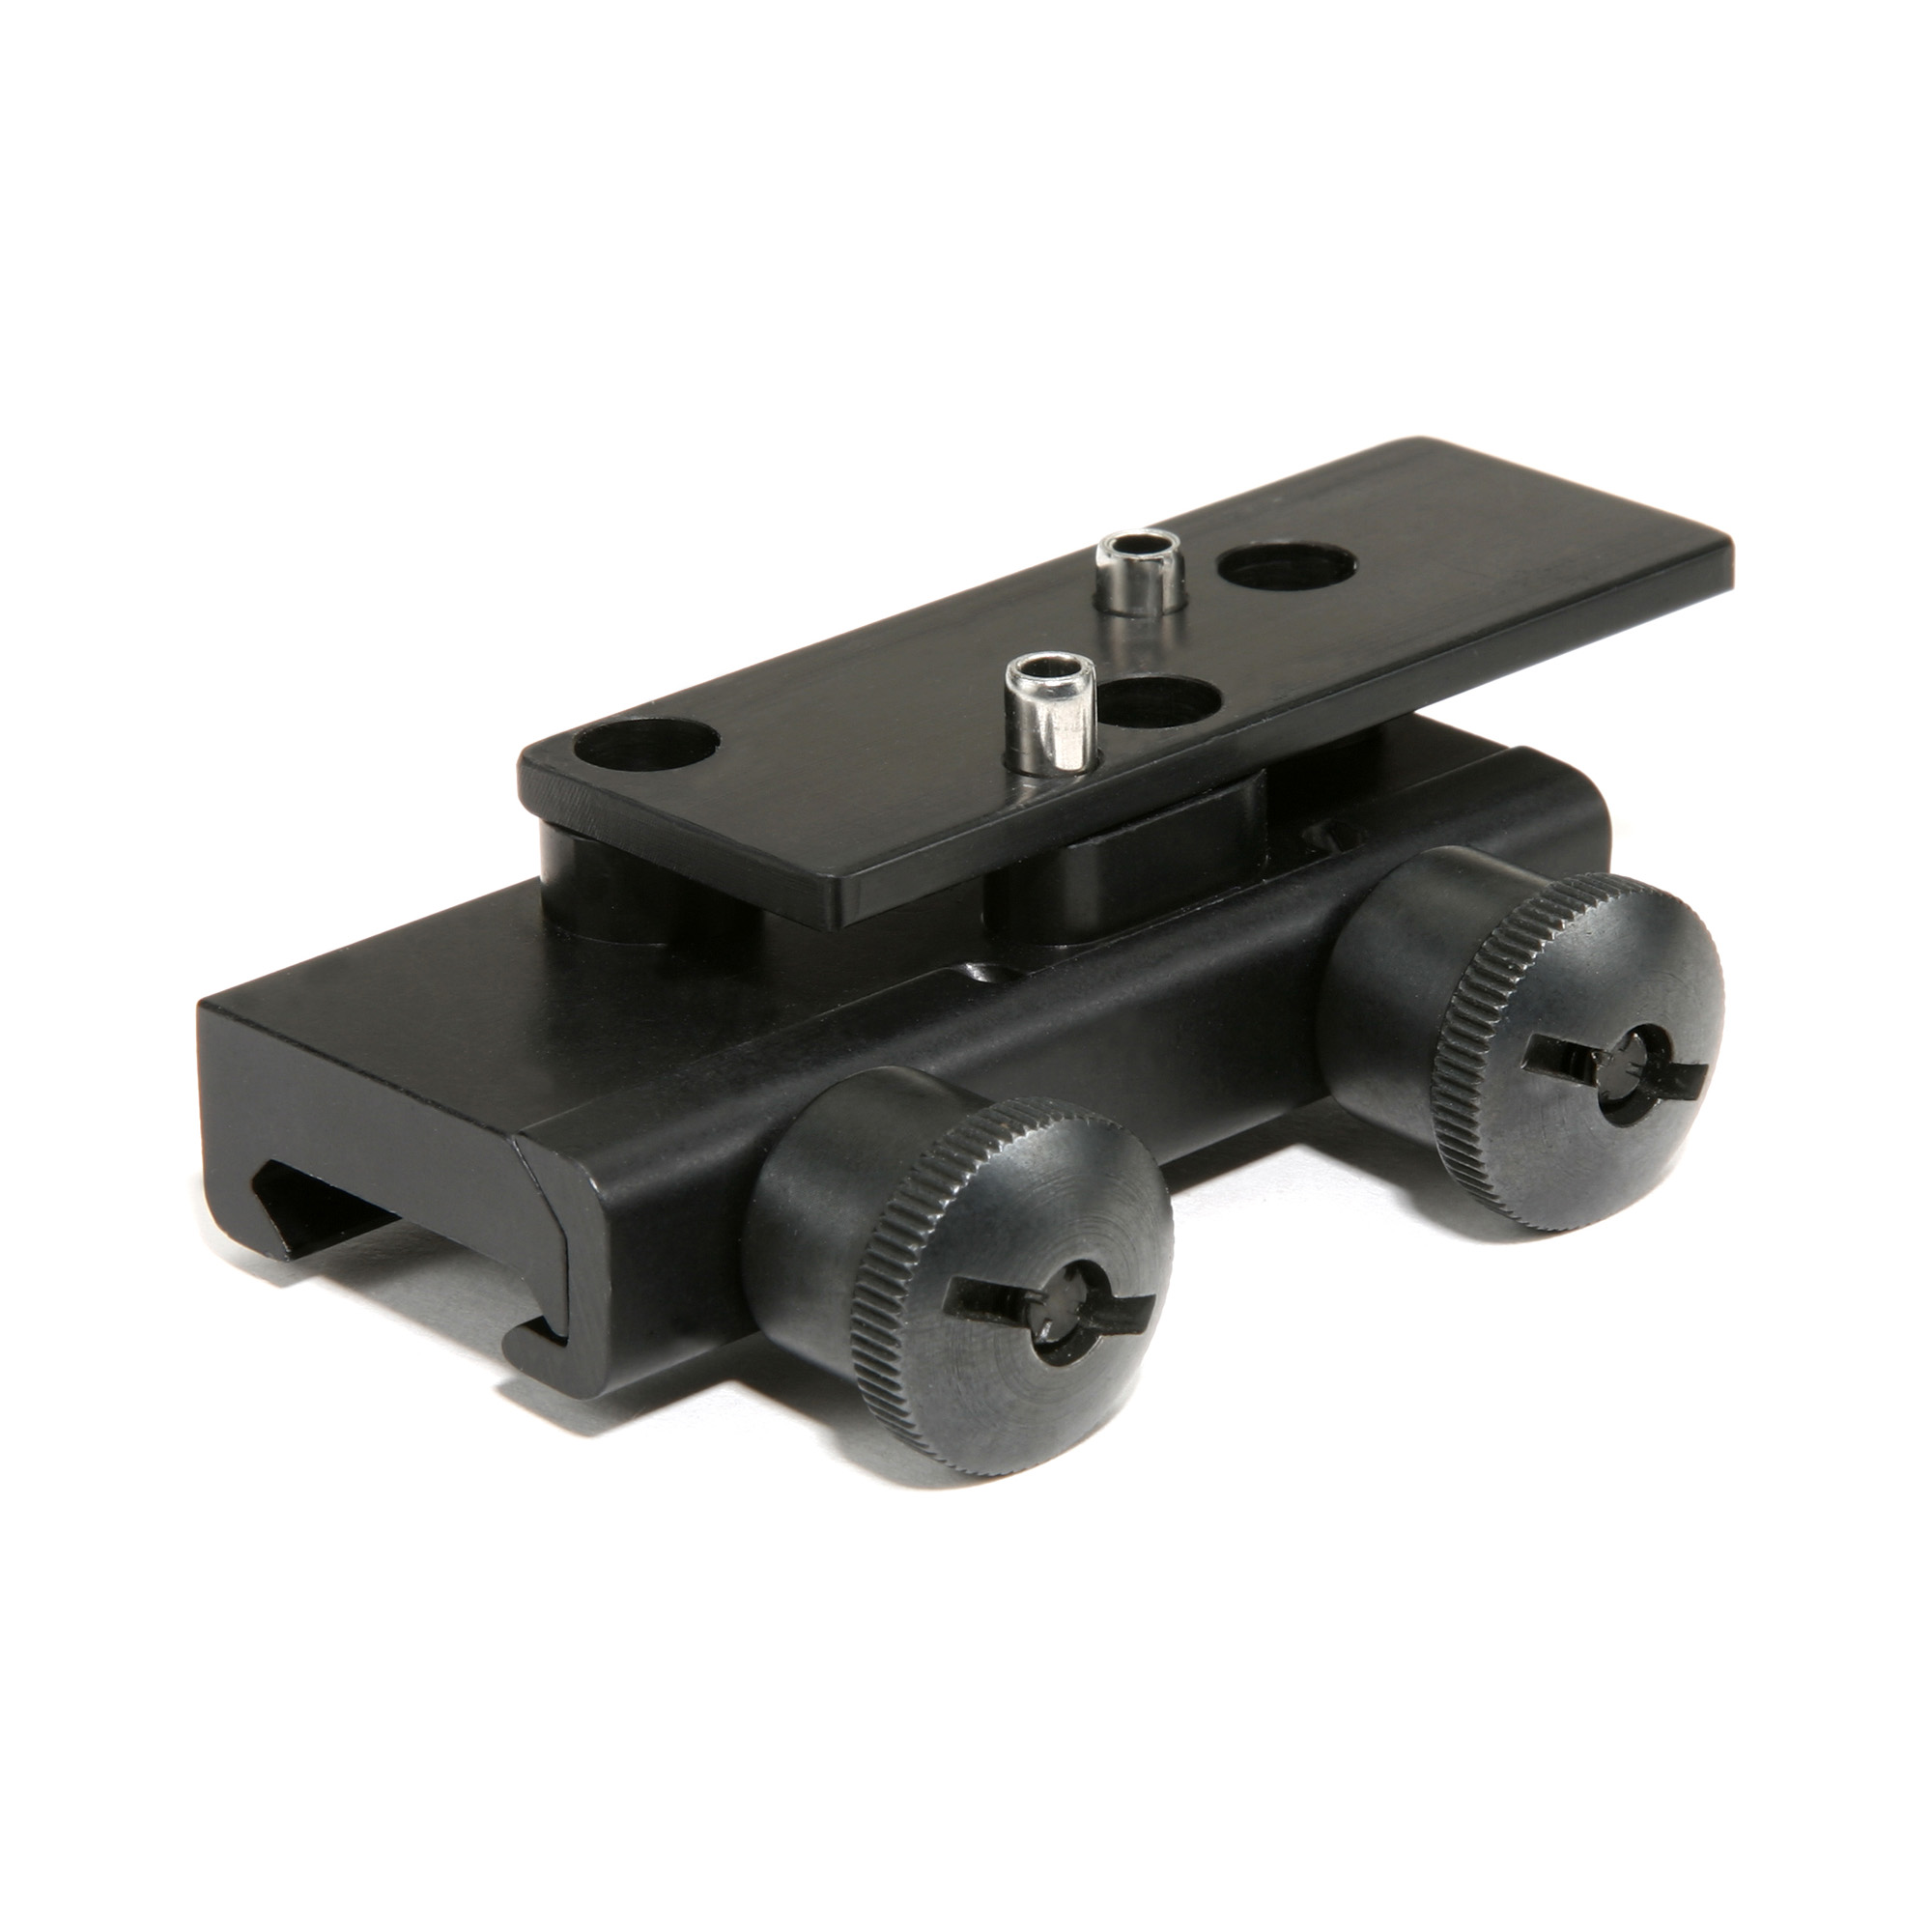 This thumbscrew flattop mount clamps onto 1913 Picatinny rails.